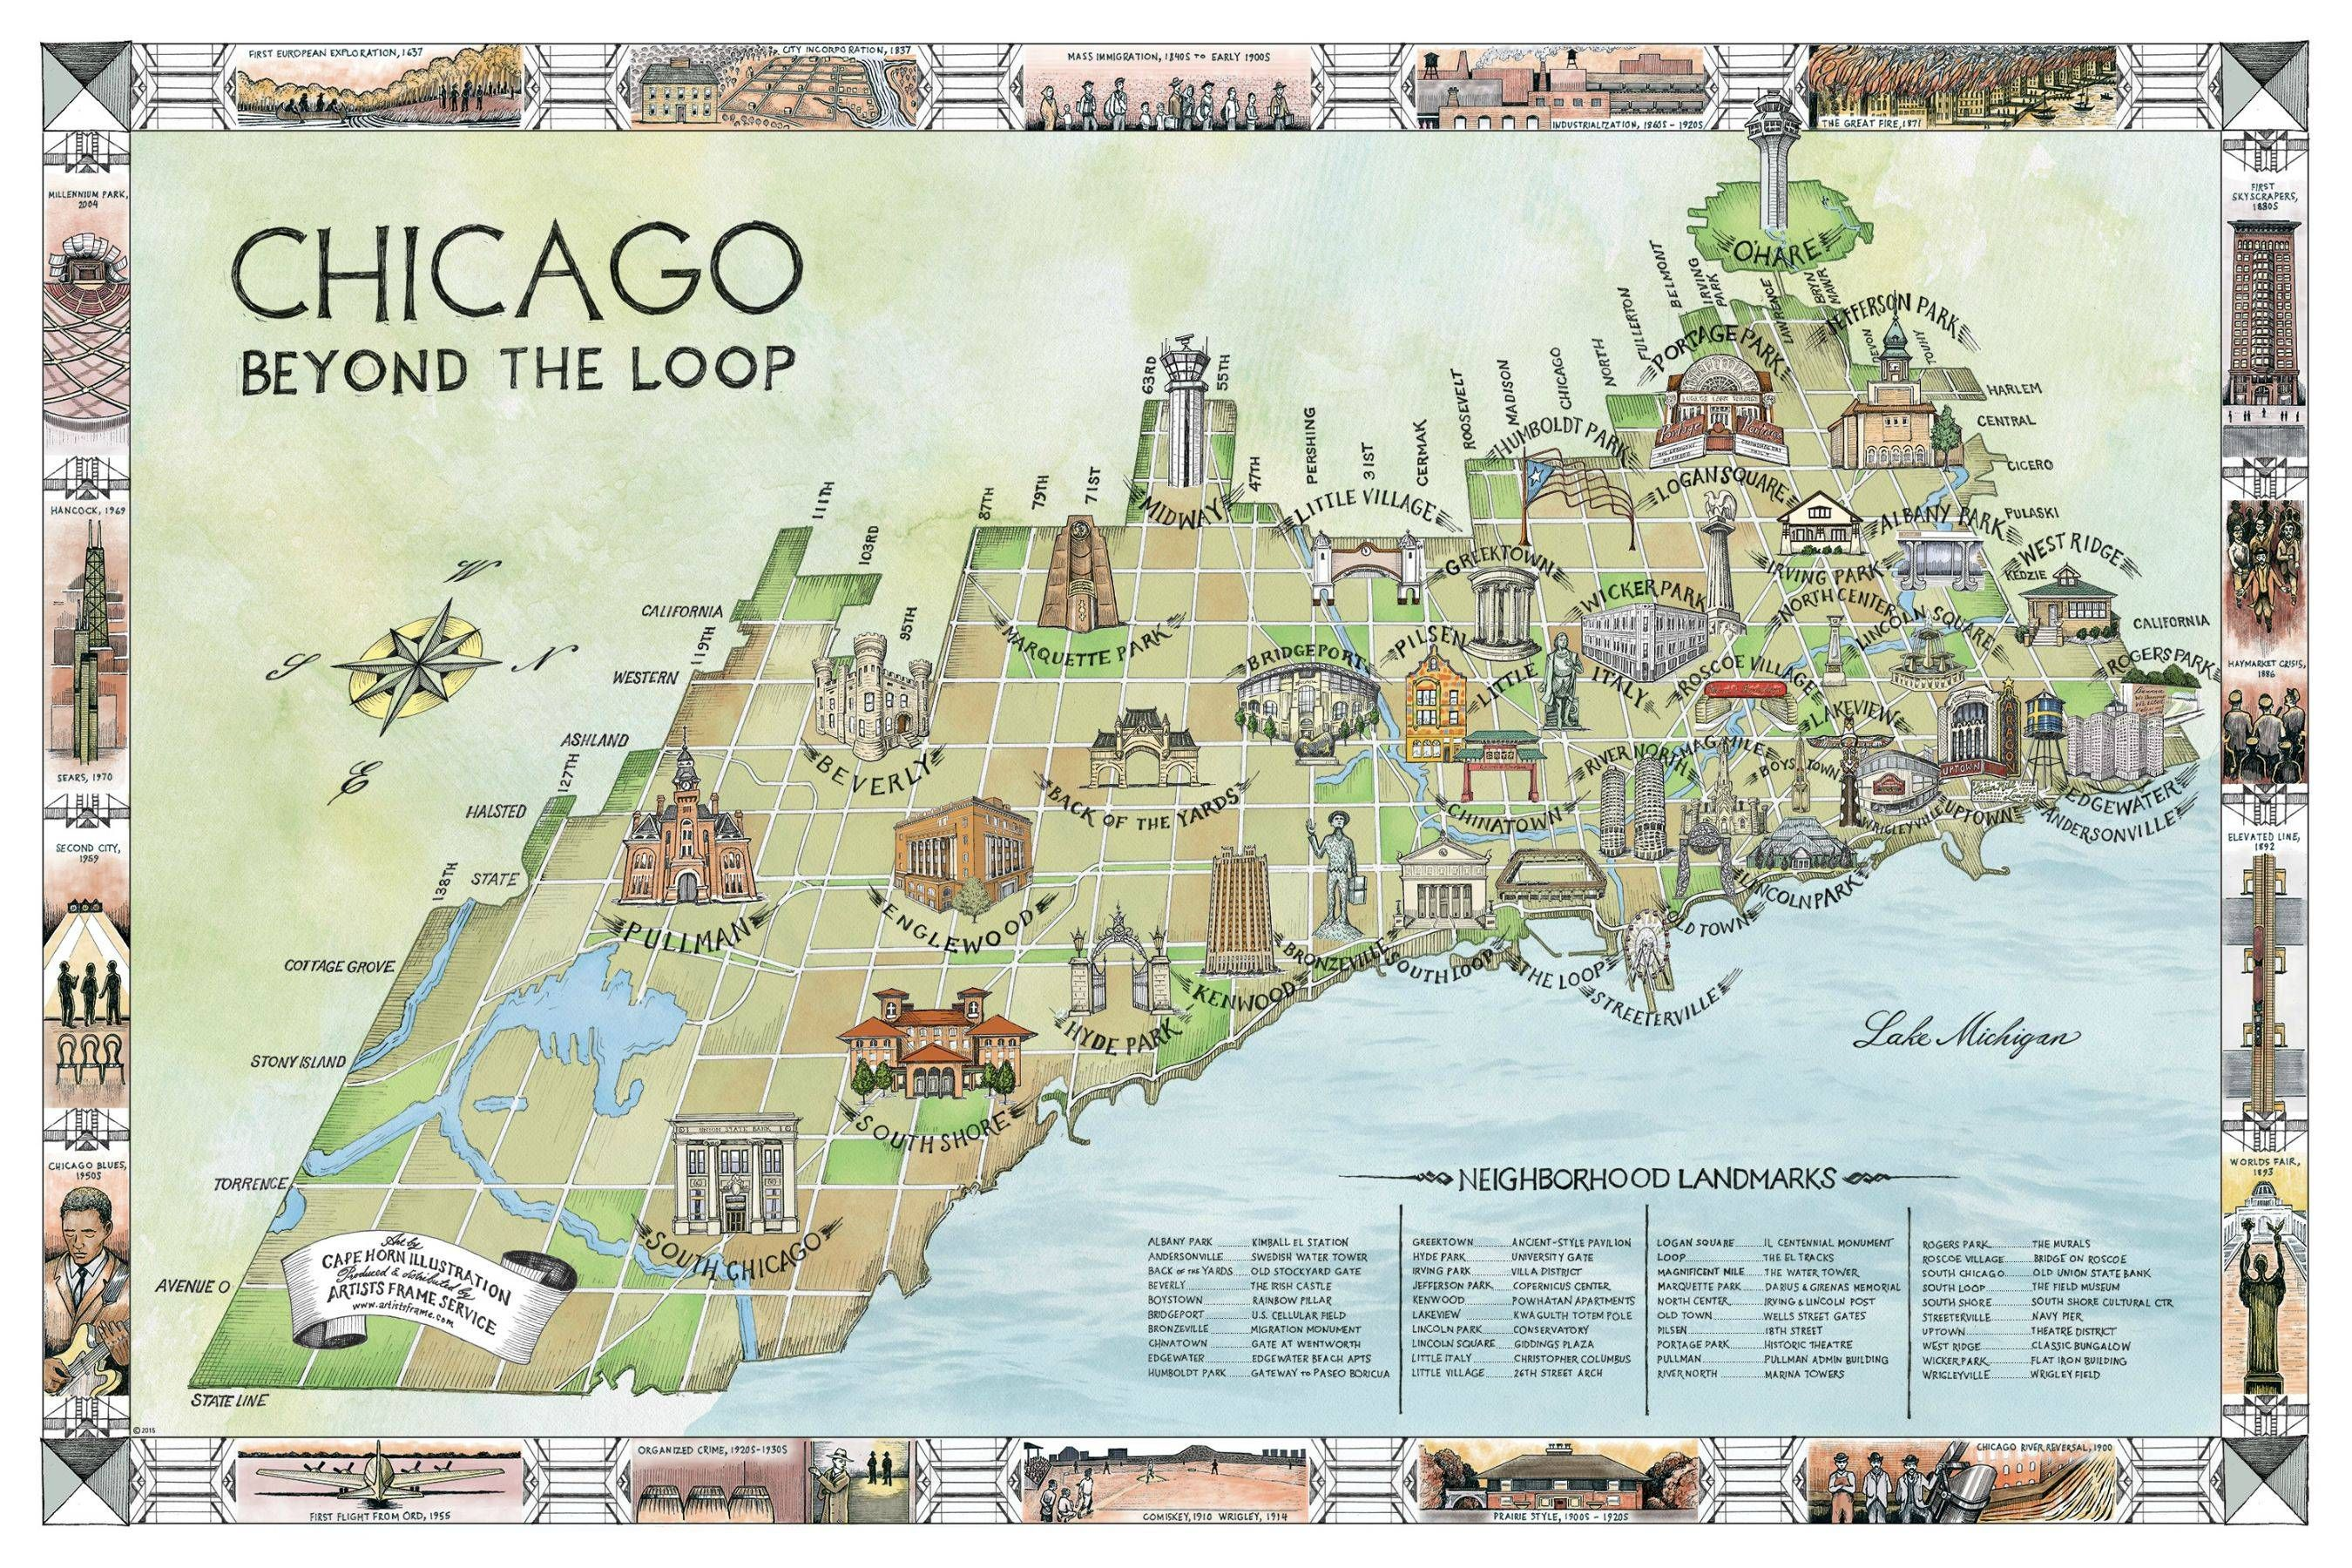 Mapping Chicago Neighborhoods By Their Landmark Buildings